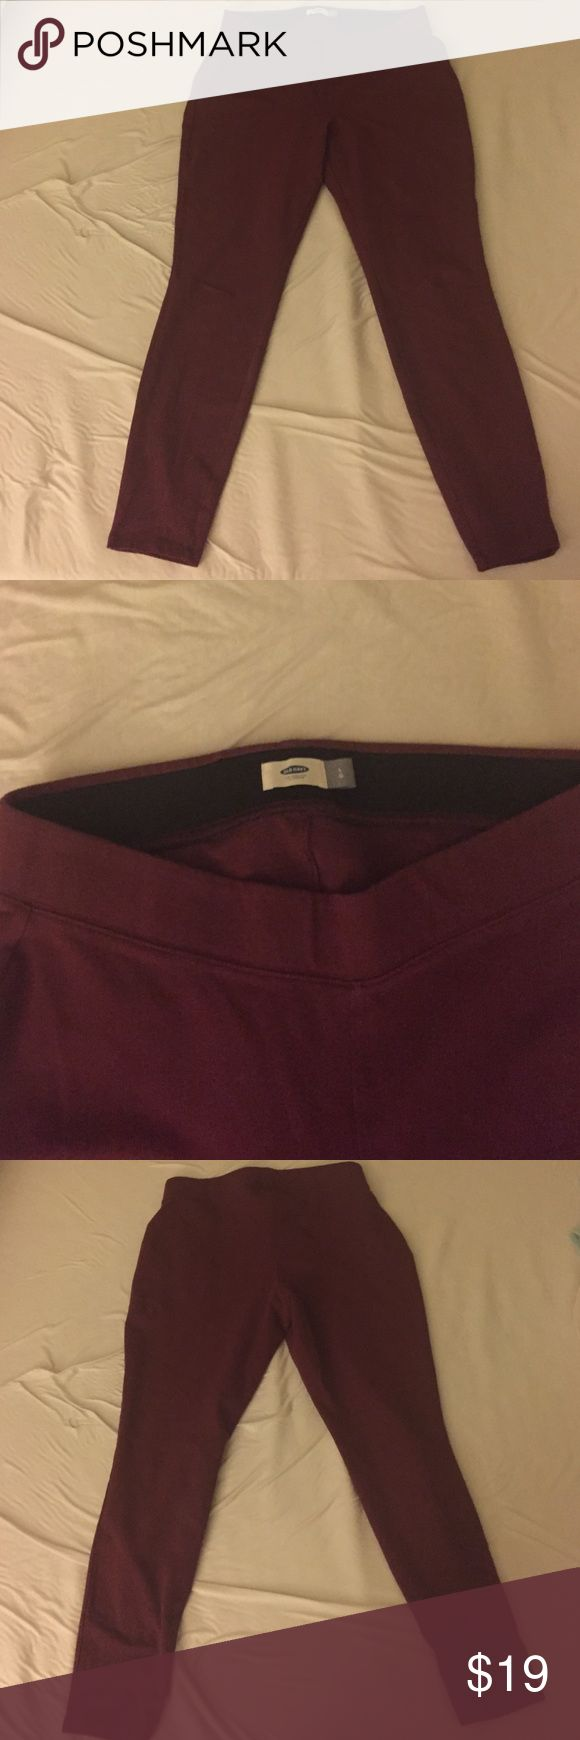 Maroon thick leggings with stretch waist Old Navy thick leggings with stretch waist. Like new. Worn once. Size women's L. Old Navy Pants Leggings